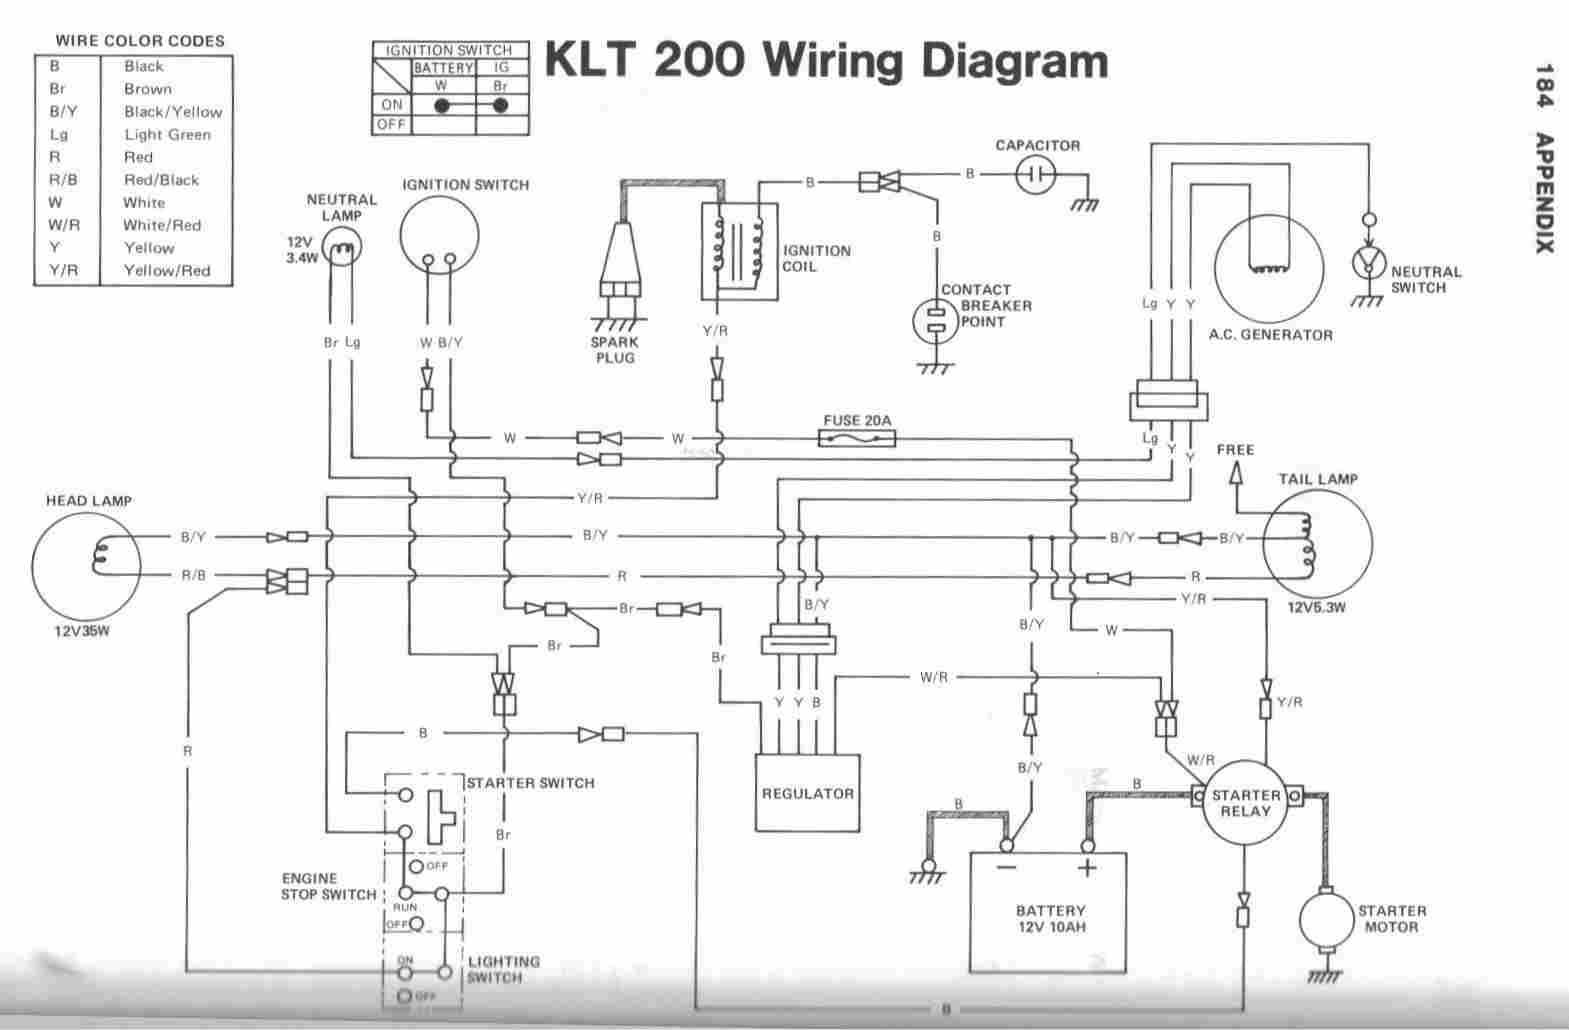 2869034594ce054a636782e5c44b61b4 residential electrical wiring diagrams pdf easy routing cool how to read control panel wiring diagrams pdf at soozxer.org